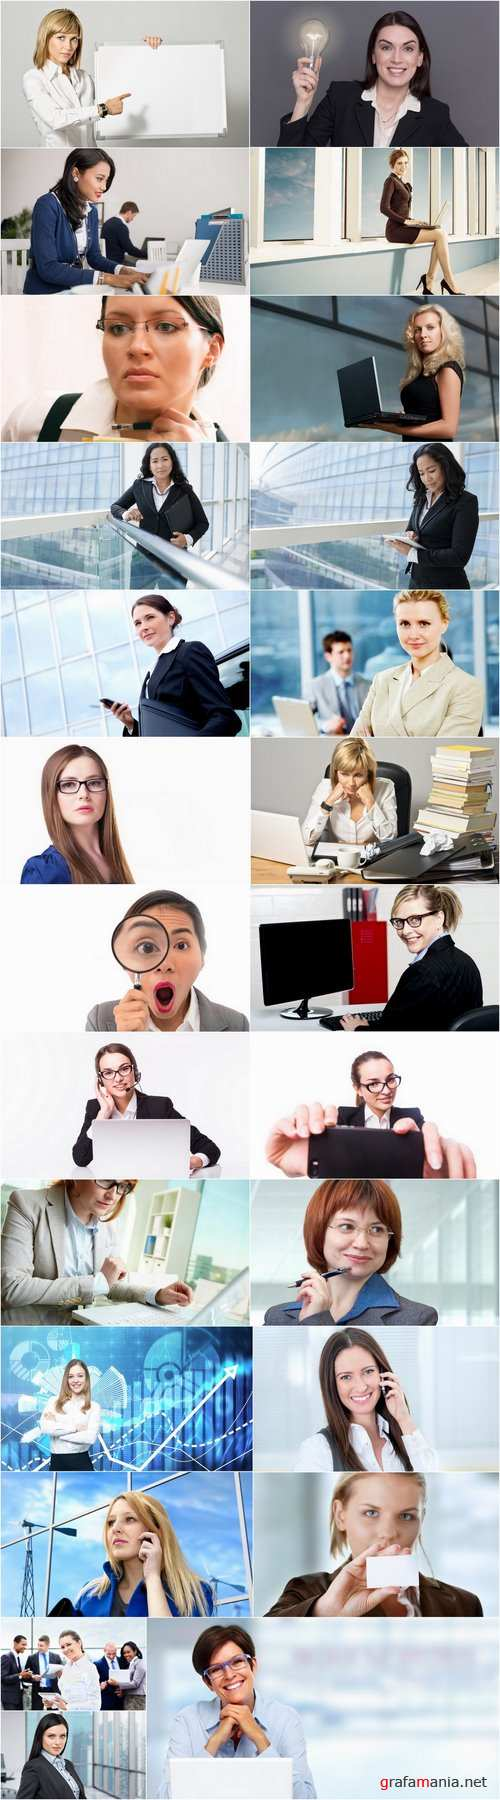 Business woman female girl business suit laptop 25 HQ Jpeg